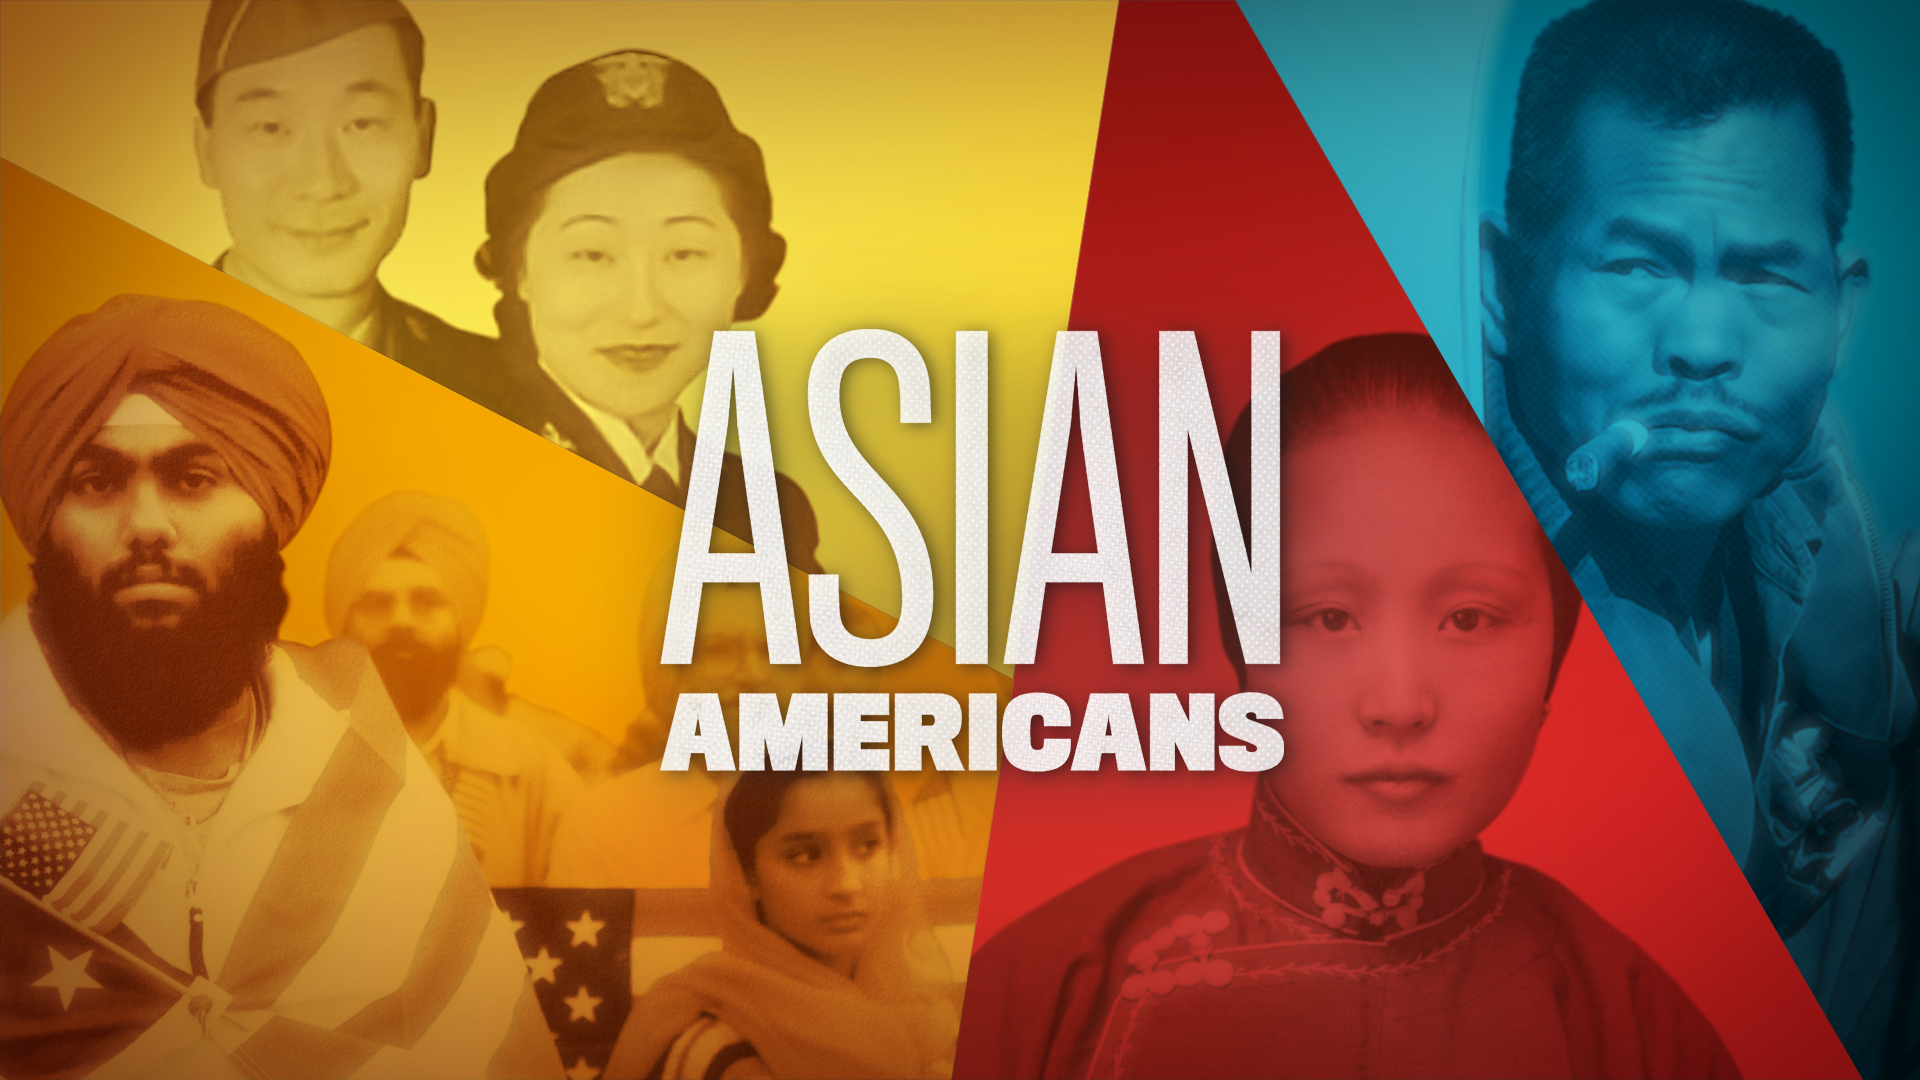 A collage of photographs depicting the diversity of Asian Americans and Pacific Islanders